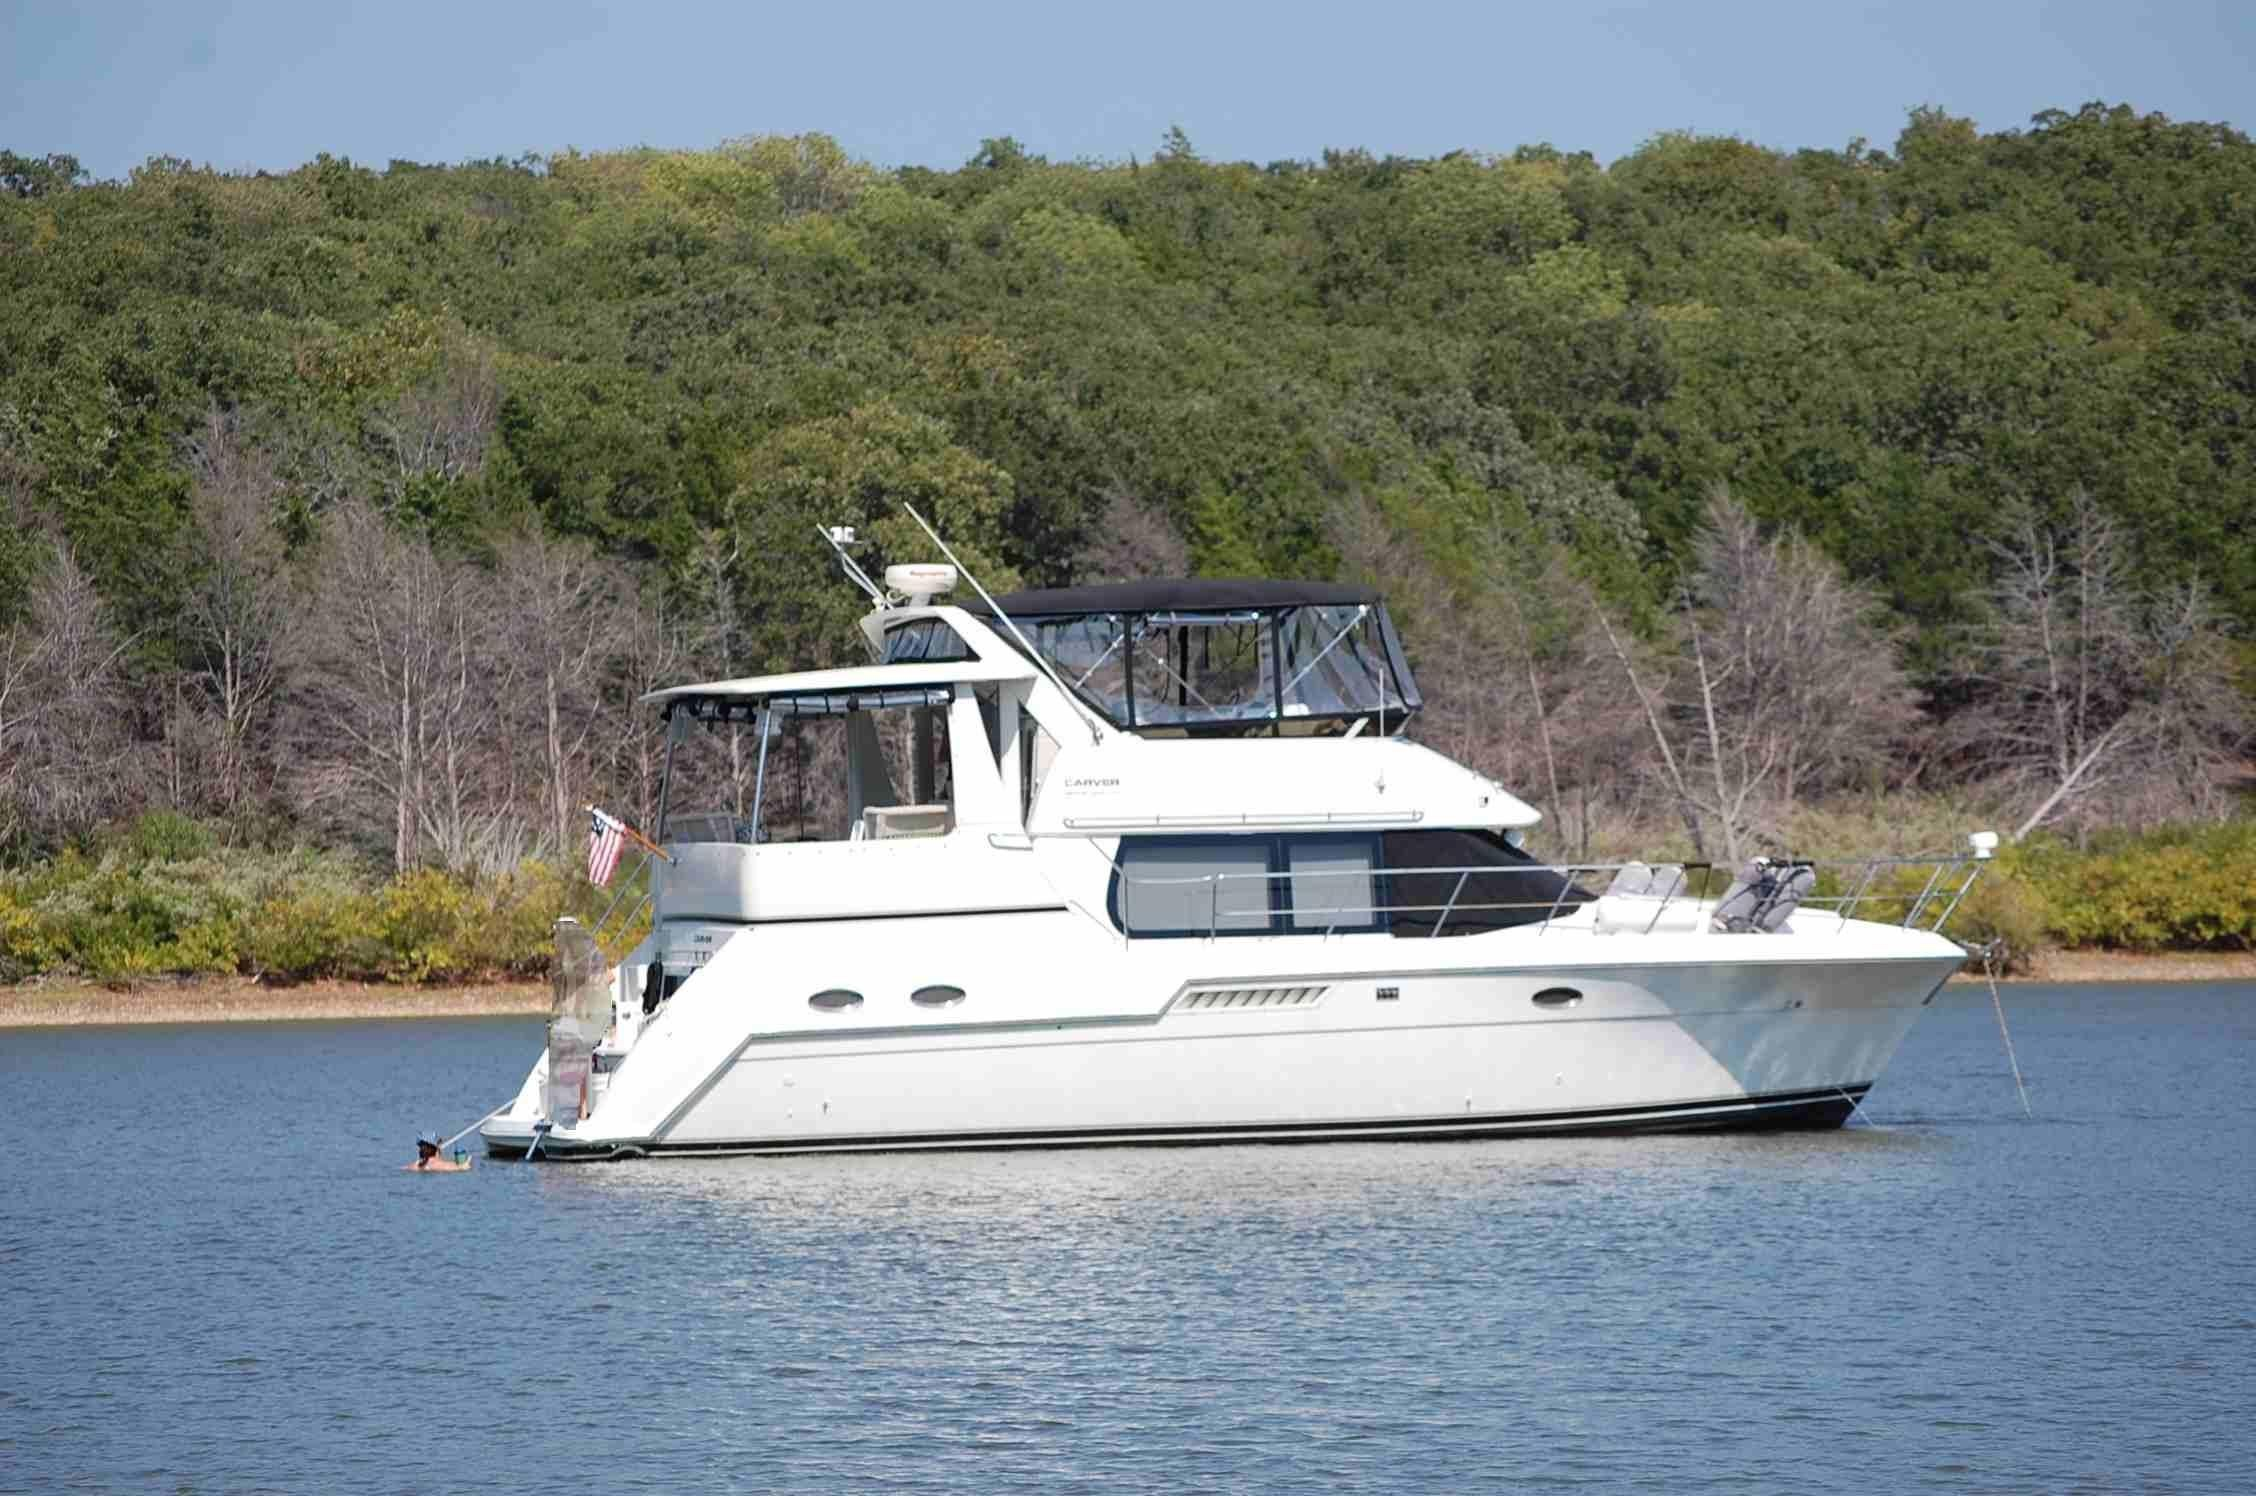 The biggest 38 family aft-cabin cruiser in the world